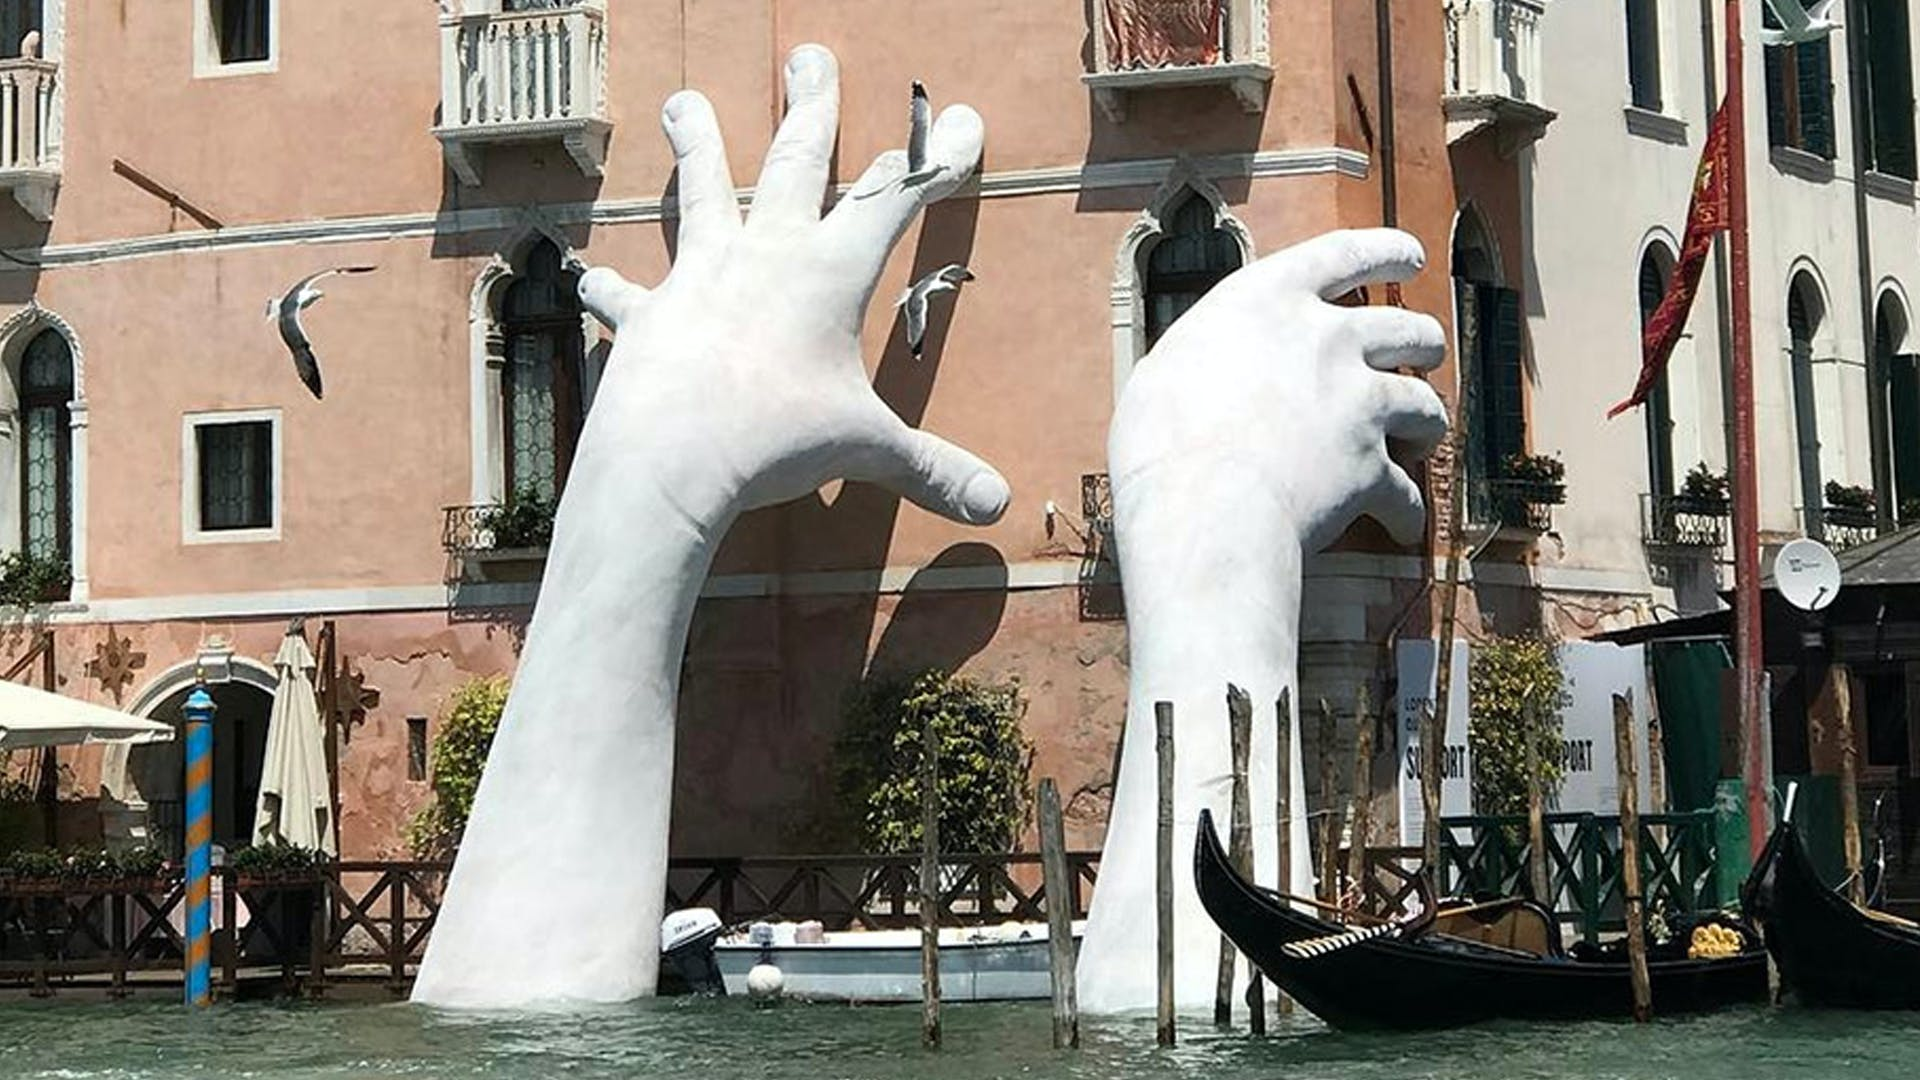 The Giant of Venice